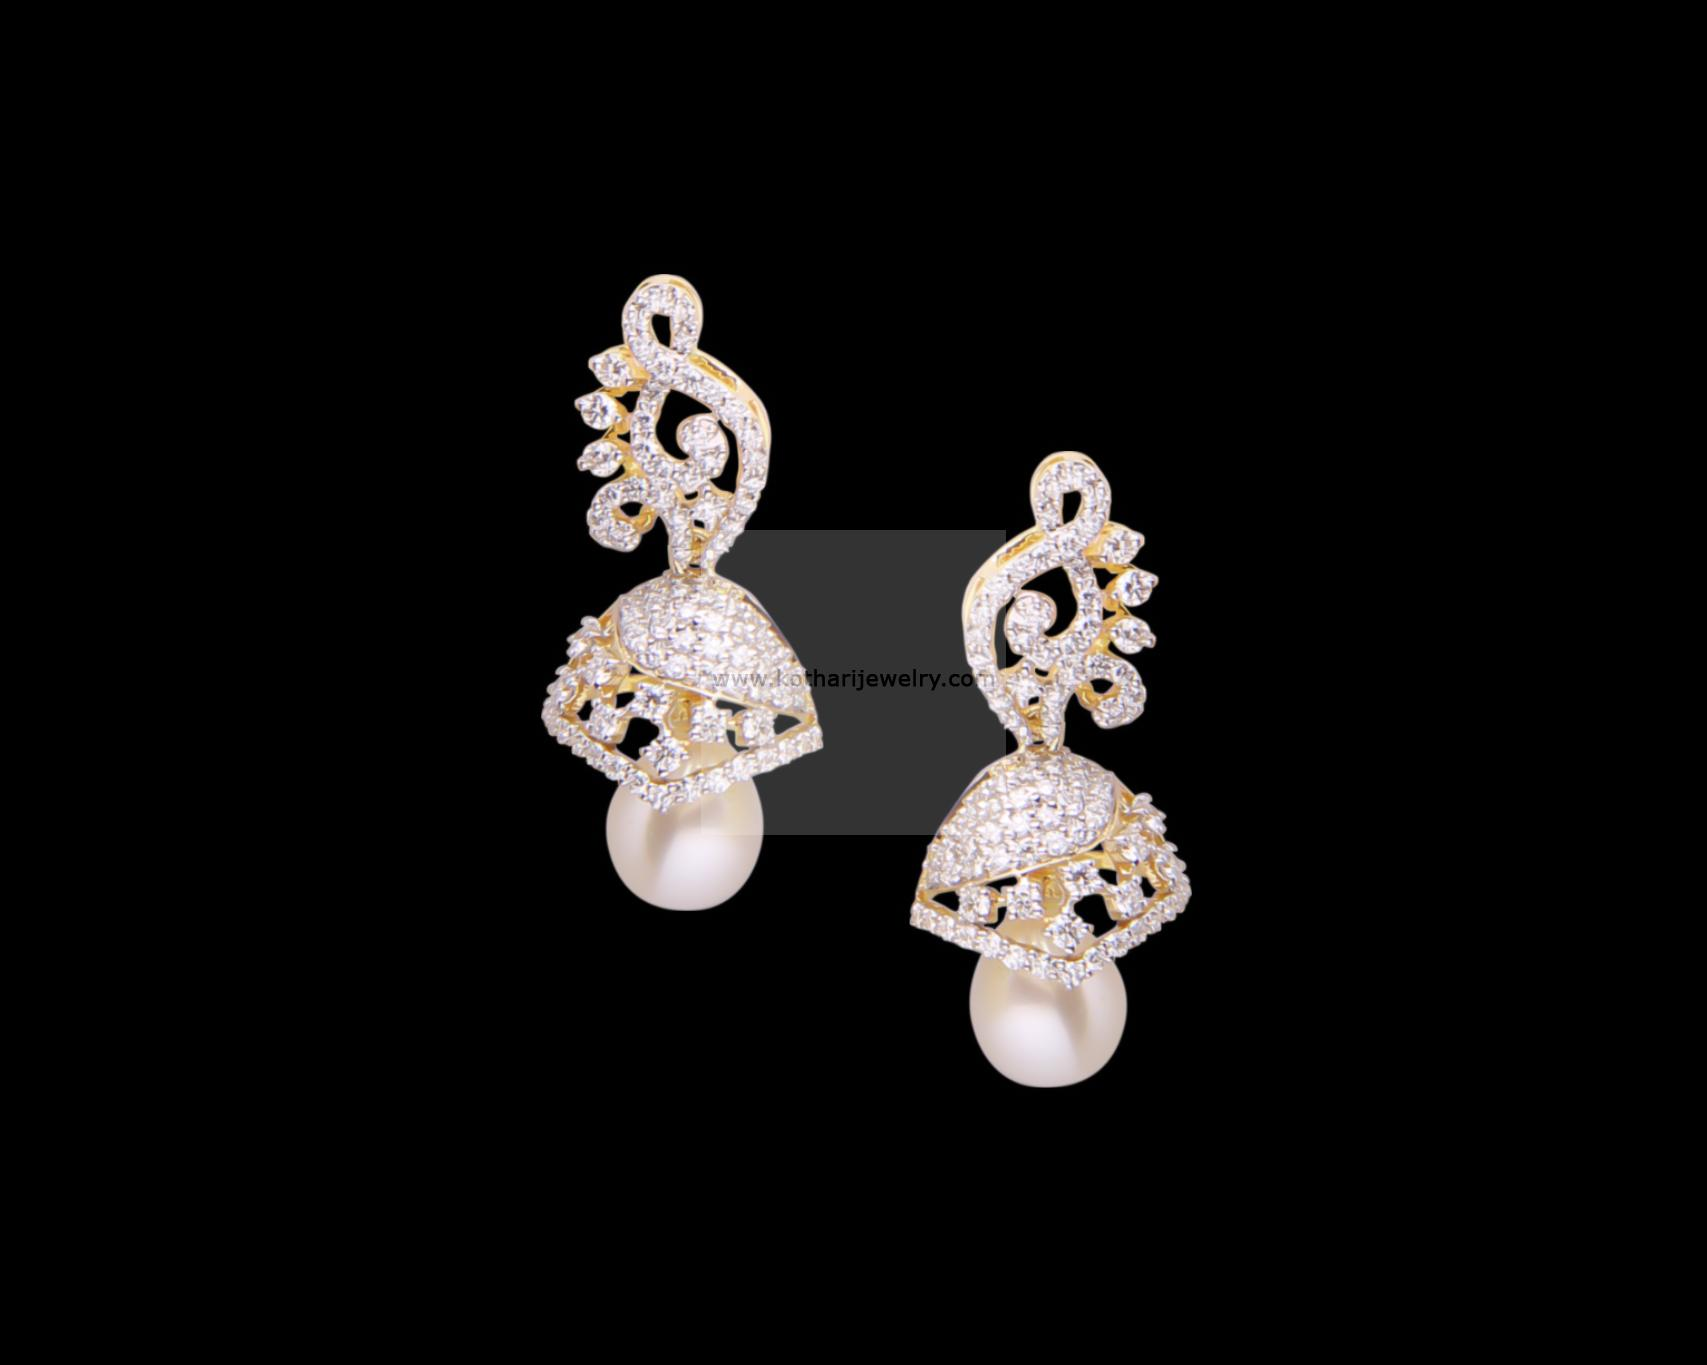 earrings jewellery diamond carat jewelry diamondland